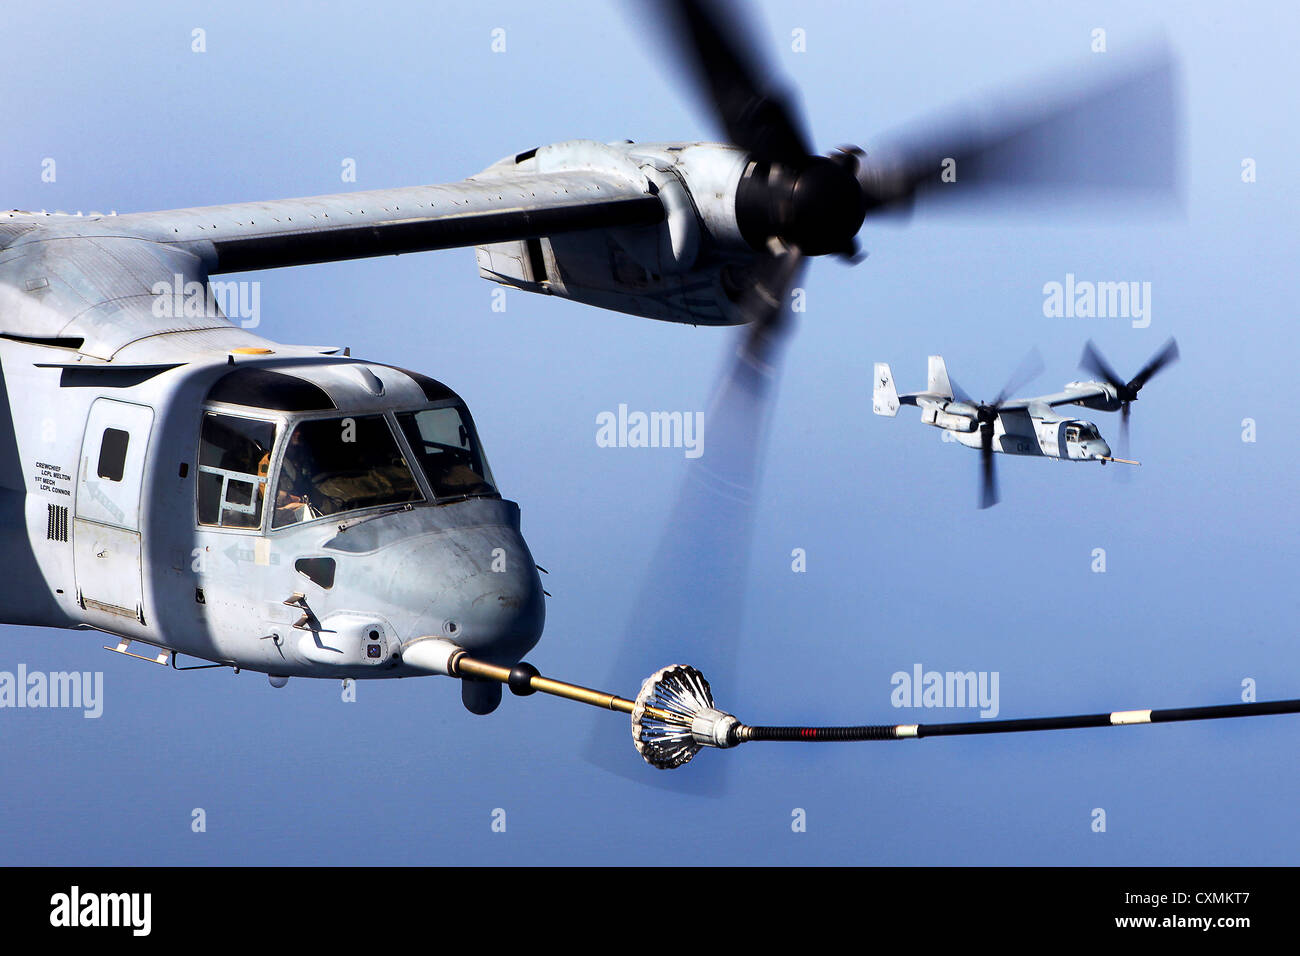 A US Marine MV-22B Osprey connects to the refueling hose of a KC-130J Hercules during aerial refueling September - Stock Image